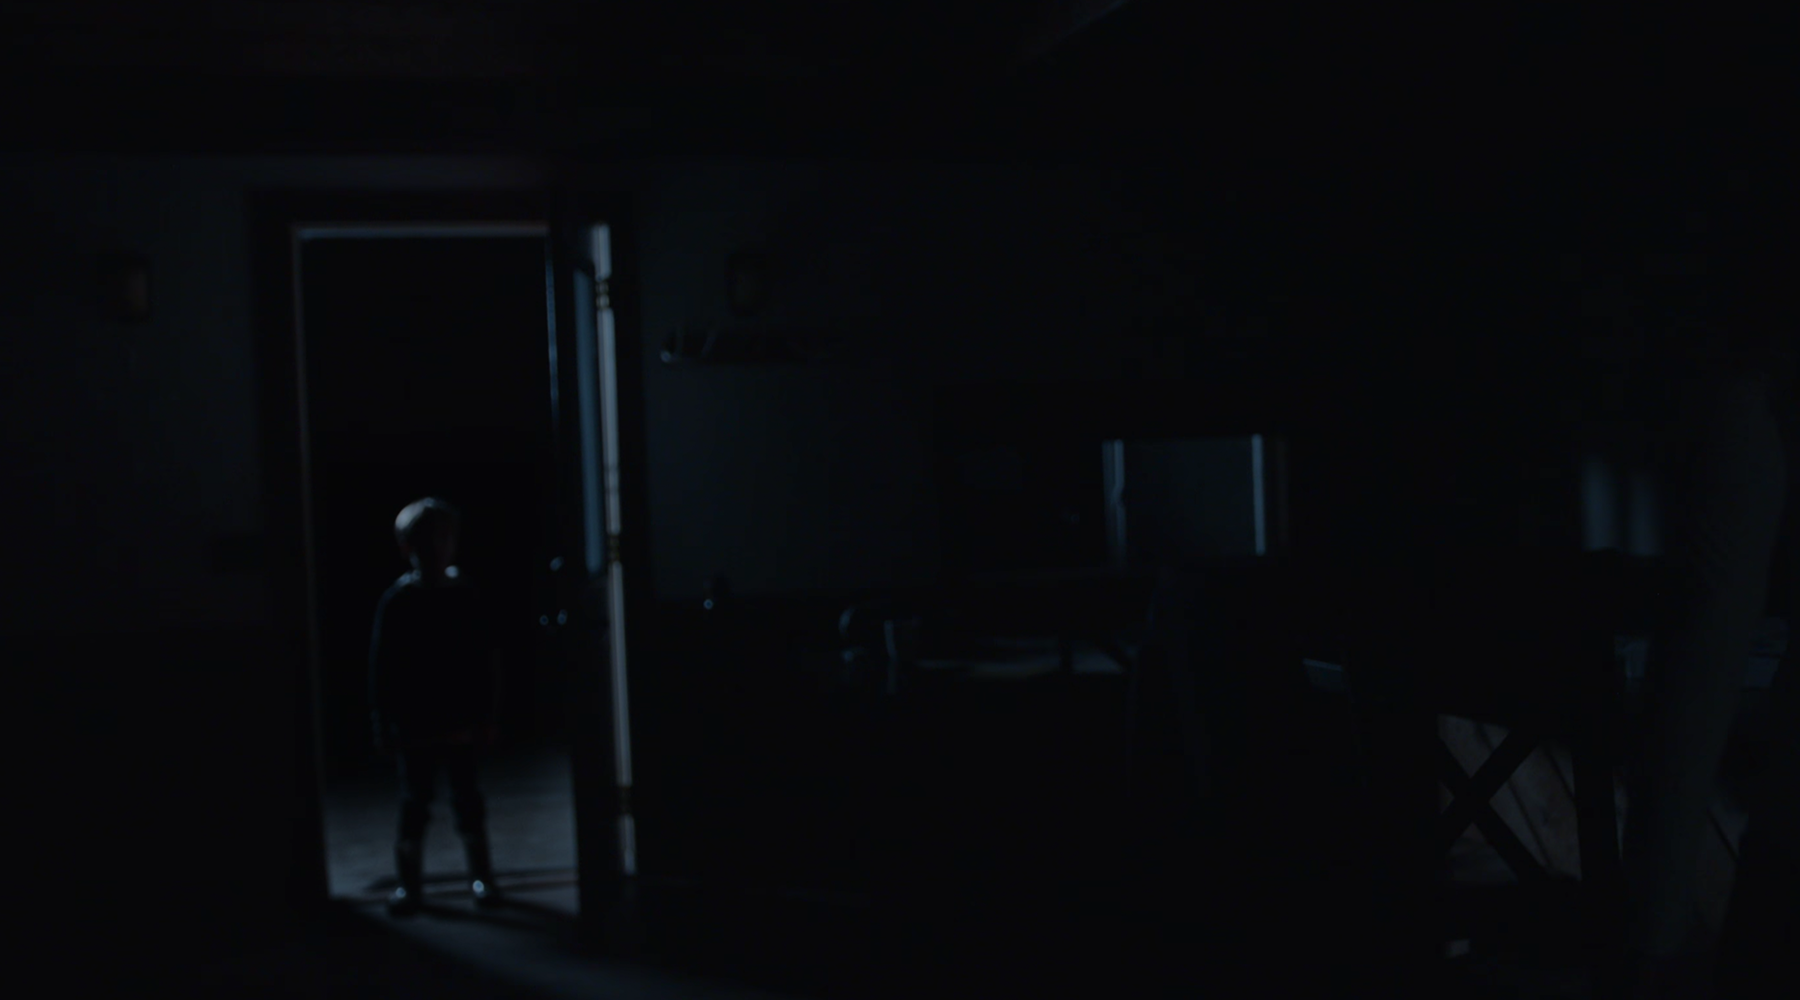 Interior Lighting for Horror Film - Moonlight